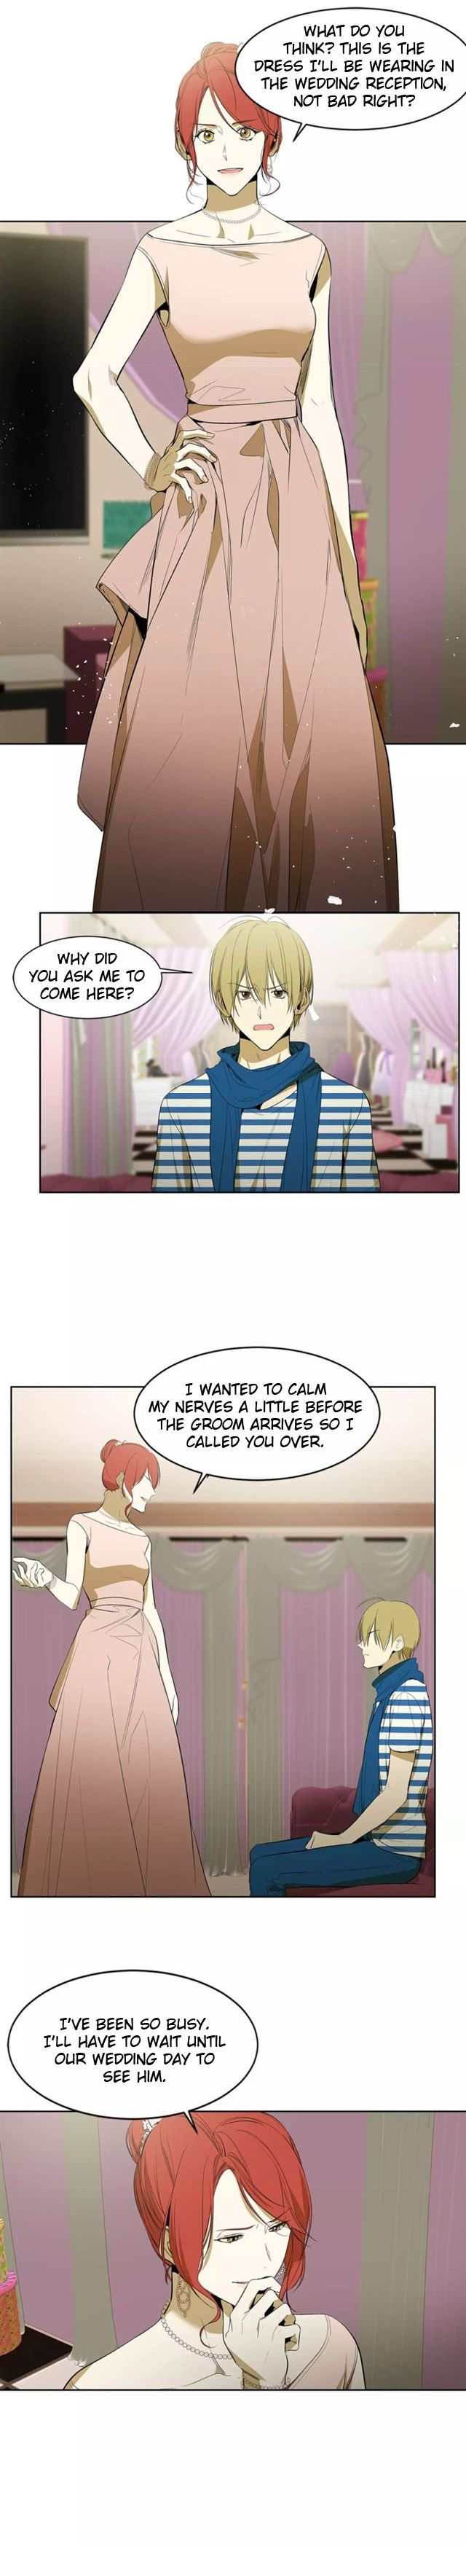 https://img2.nineanime.com/comics/pic1/19/22099/594841/SpecialRelationshipLaw270282.jpg Page 1